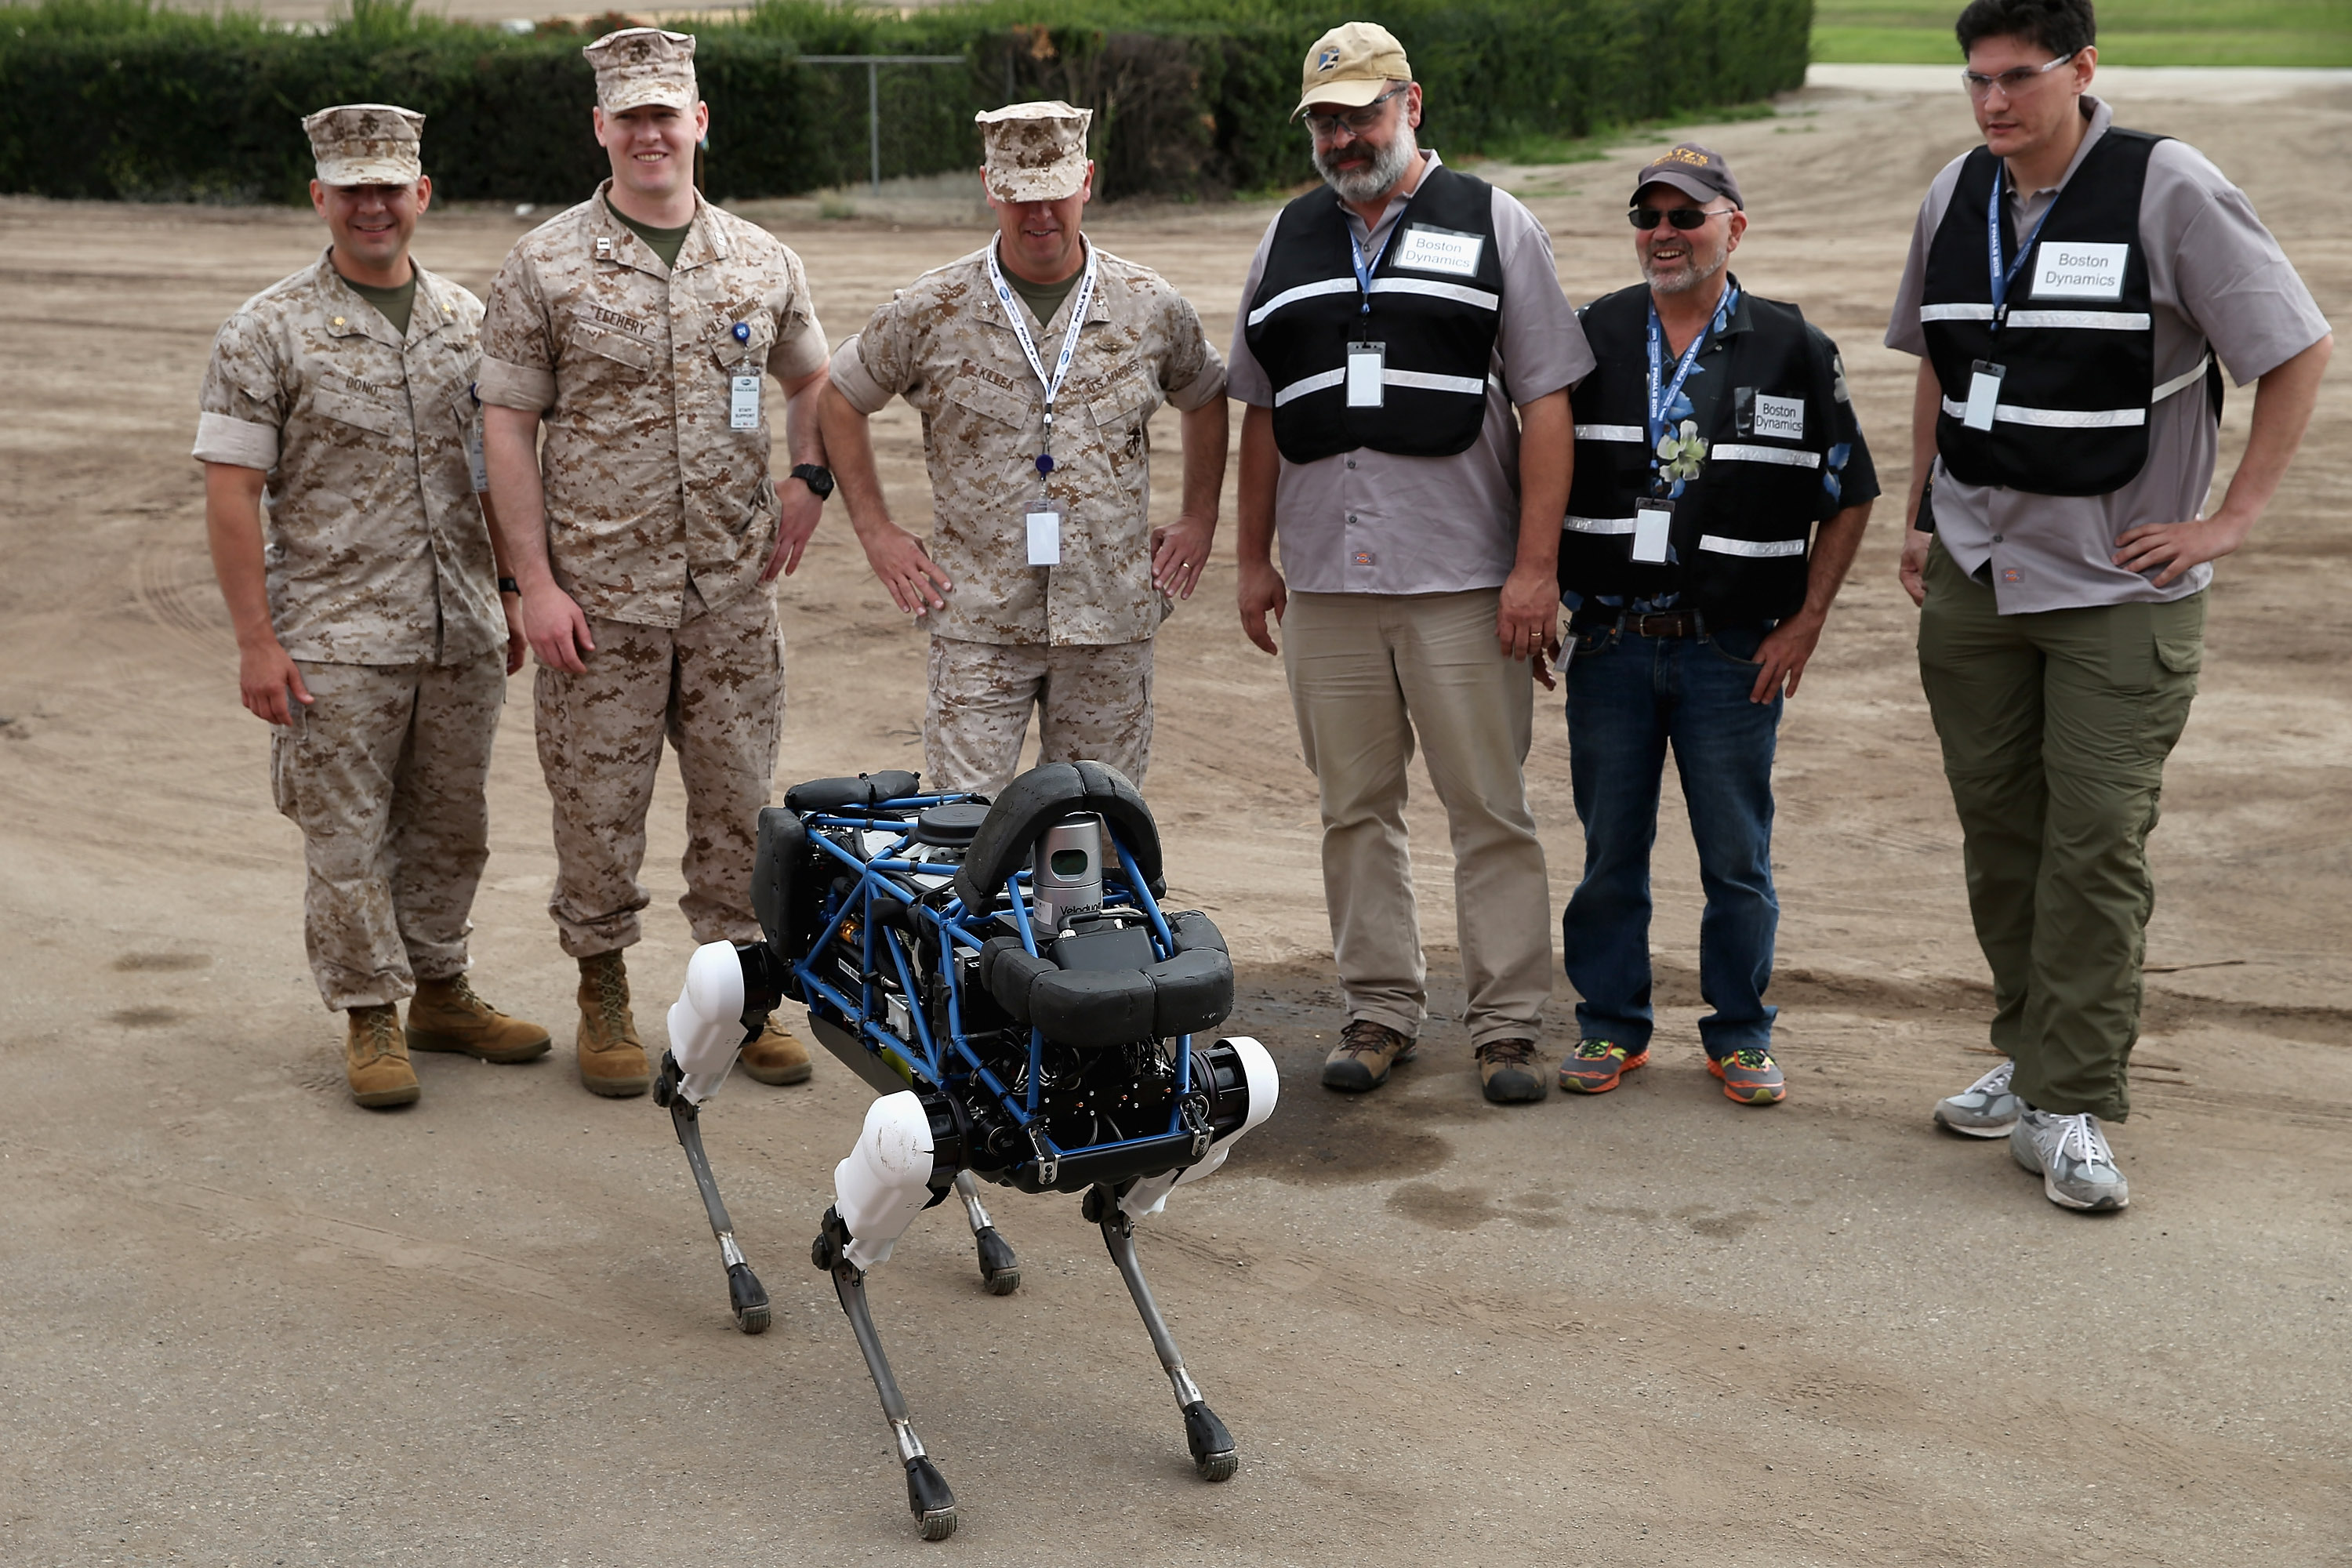 United States Marines and representatives from Boston Dynamics look at Spot, a four-legged robot designed for indoor and outdoor operation, during the Defense Advanced Research Projects Agency Robotics Challenge at the Fairplex June 5, 2015 in Pomona, California.(Photo by Chip Somodevilla/Getty Images)